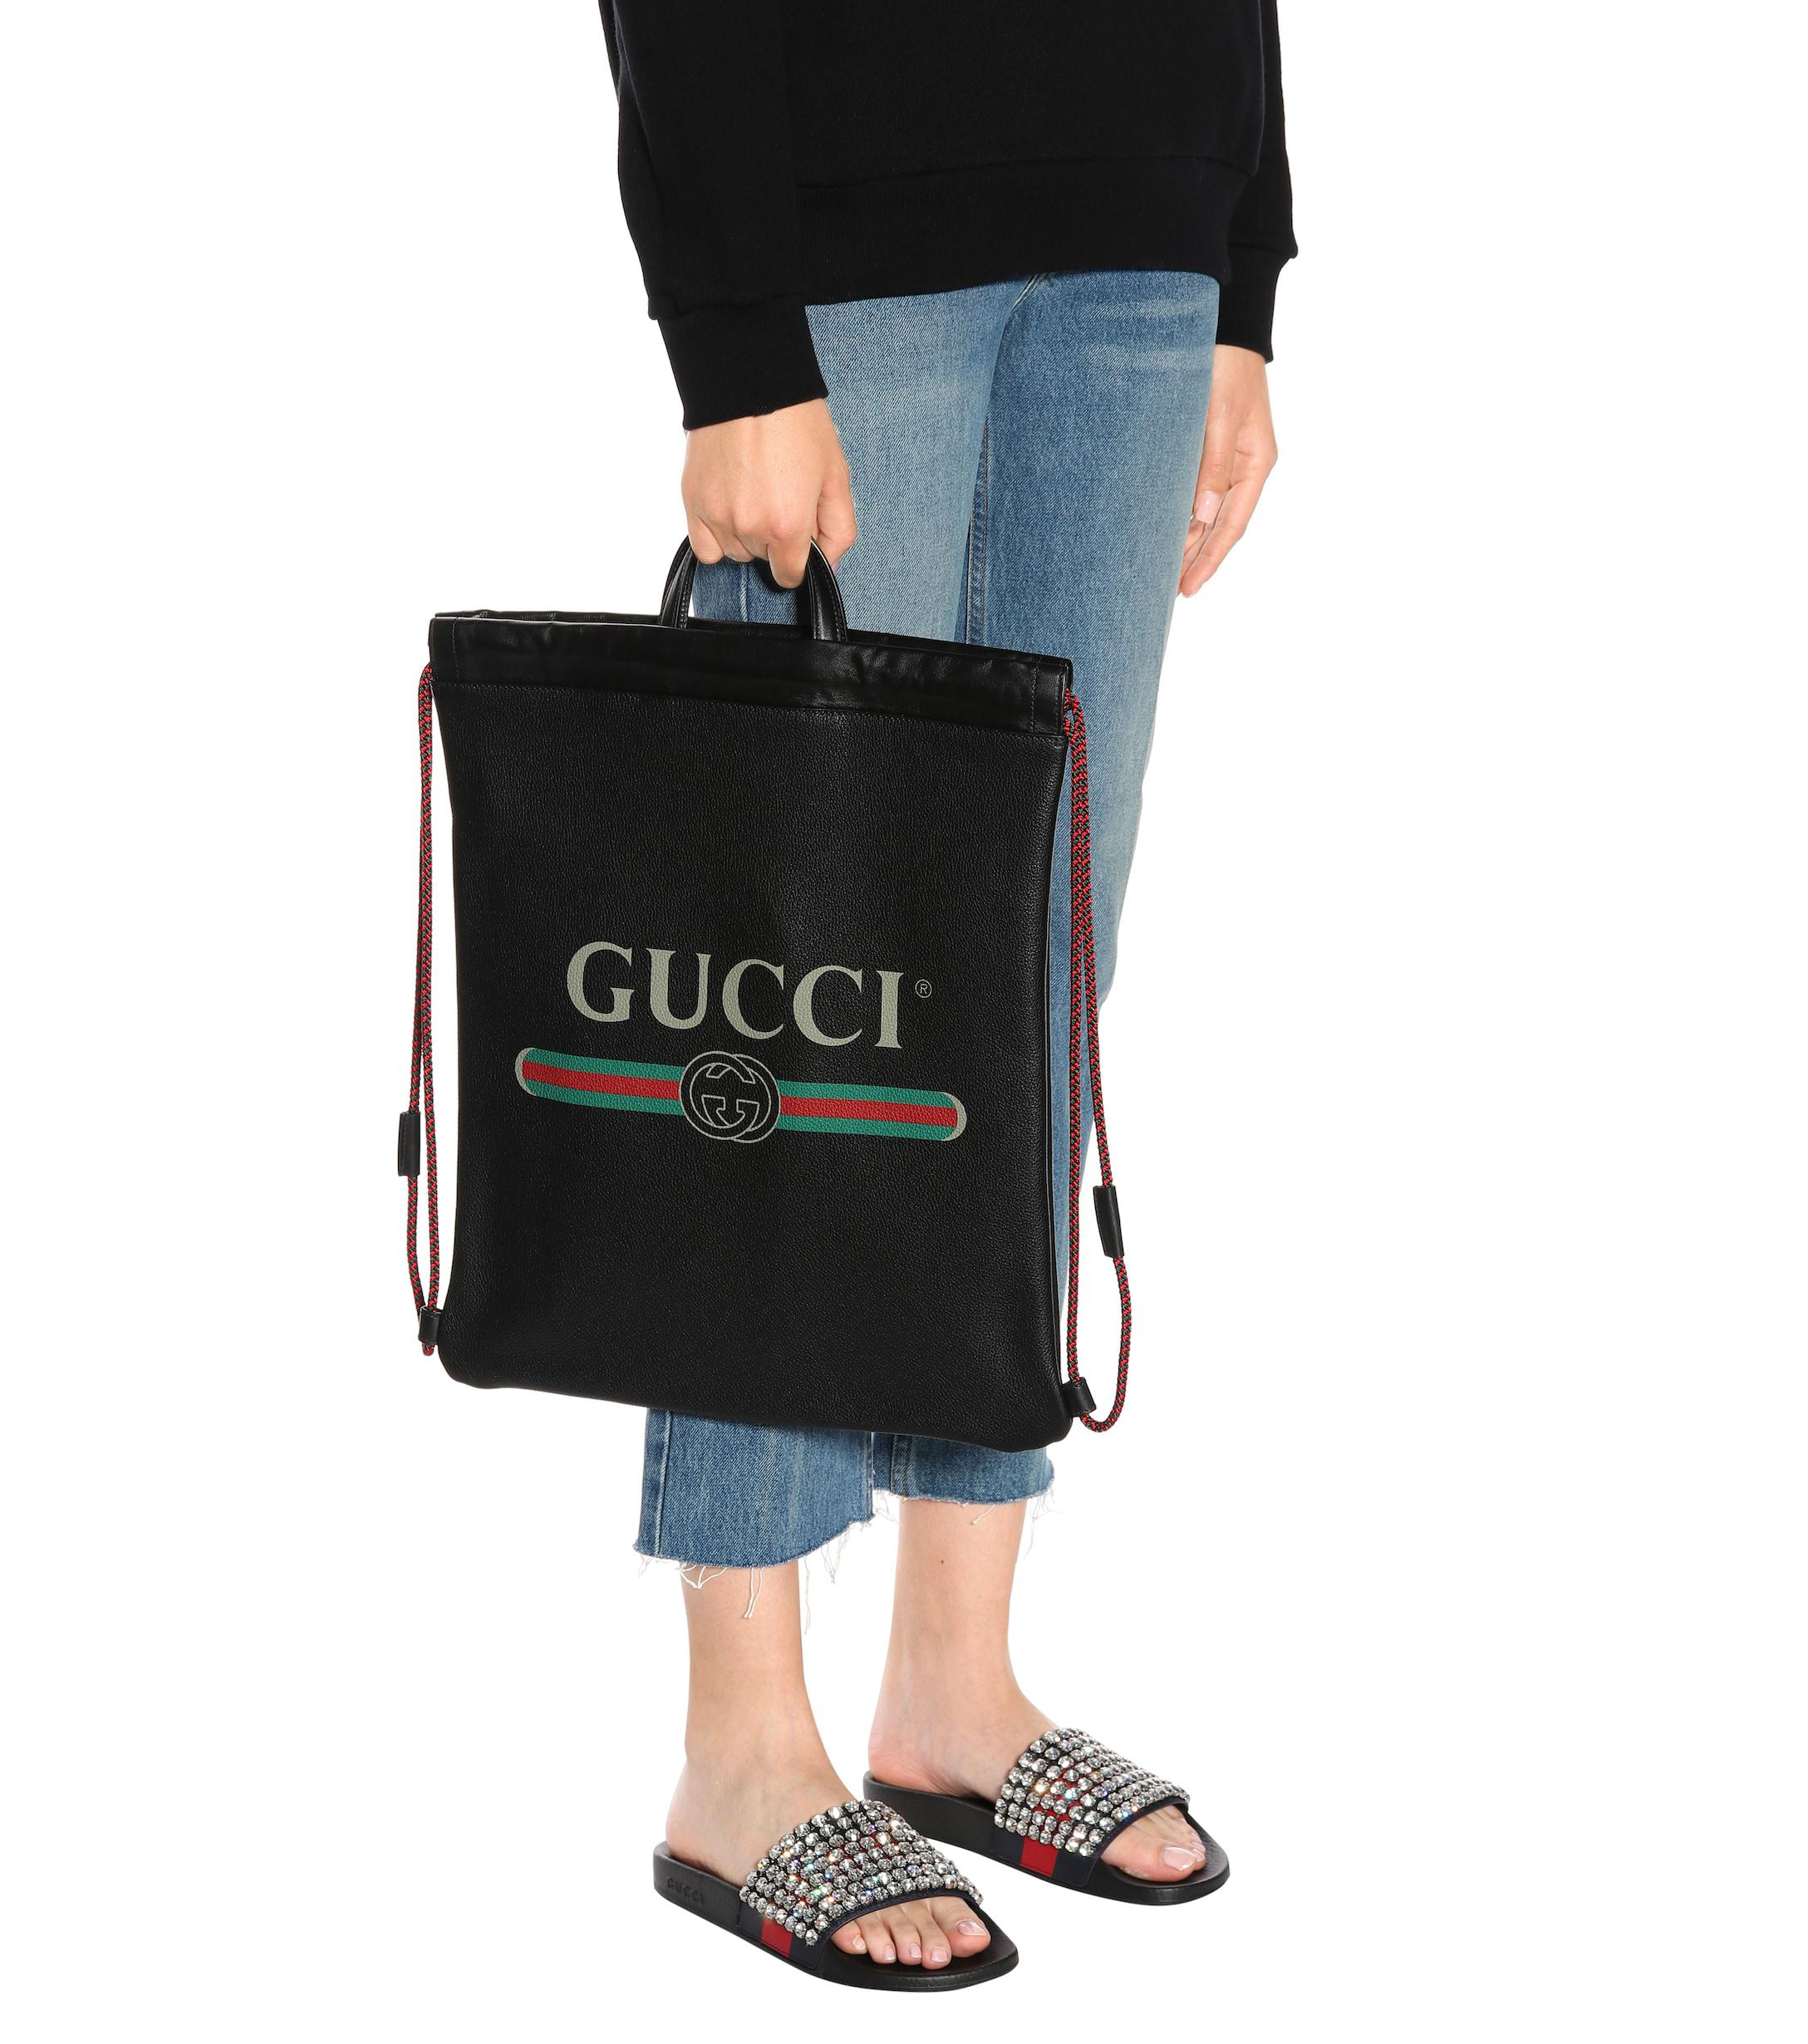 828a1f532e6a Gucci - Black Printed Leather Drawstring Backpack - Lyst. View fullscreen